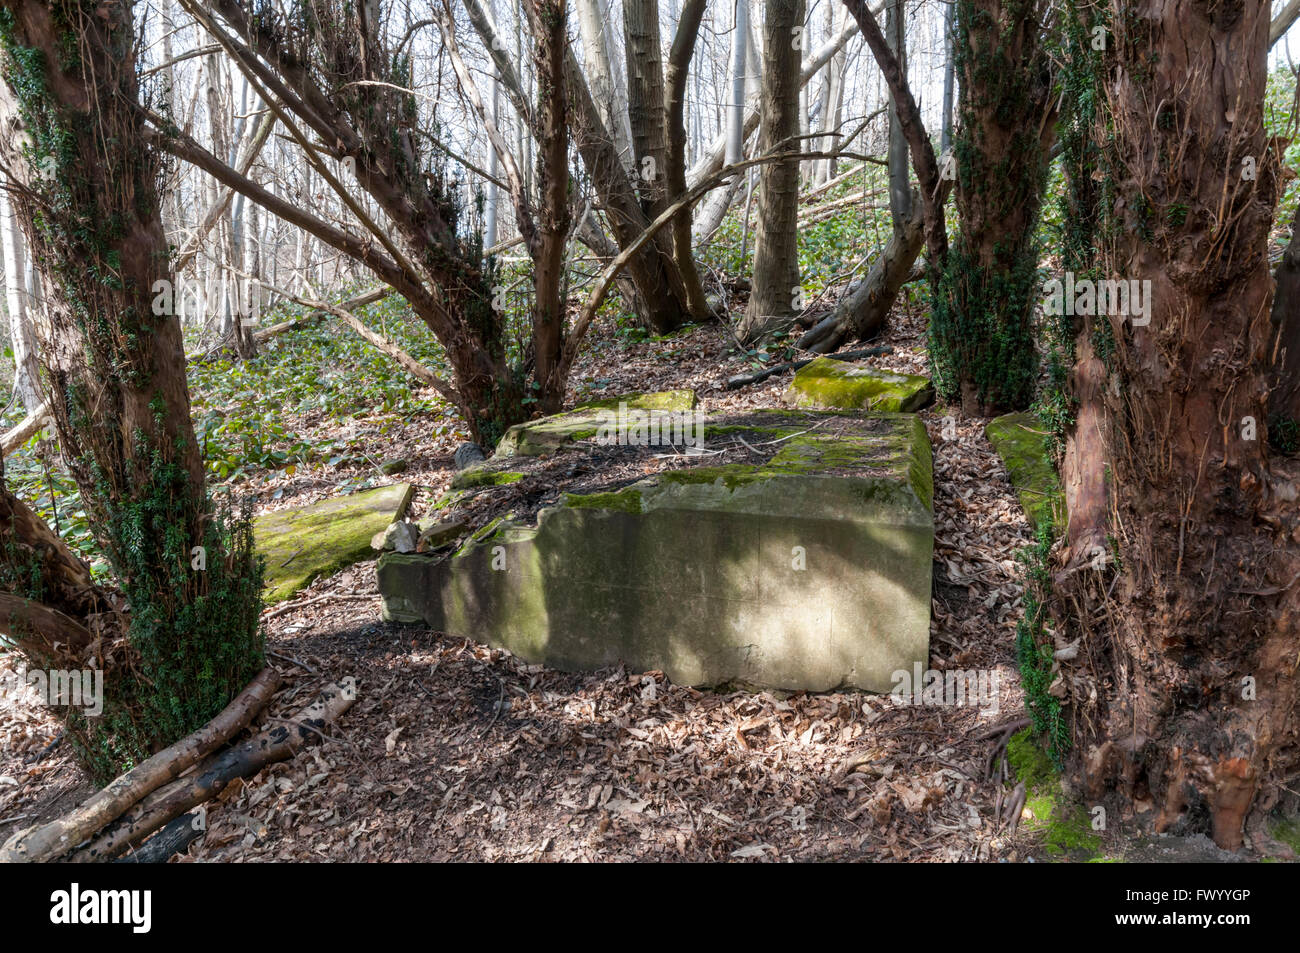 The remains of the Toe monument at Cobham Woods in Kent. A memorial to a severed toe, and its owner.  DETAILS IN - Stock Image